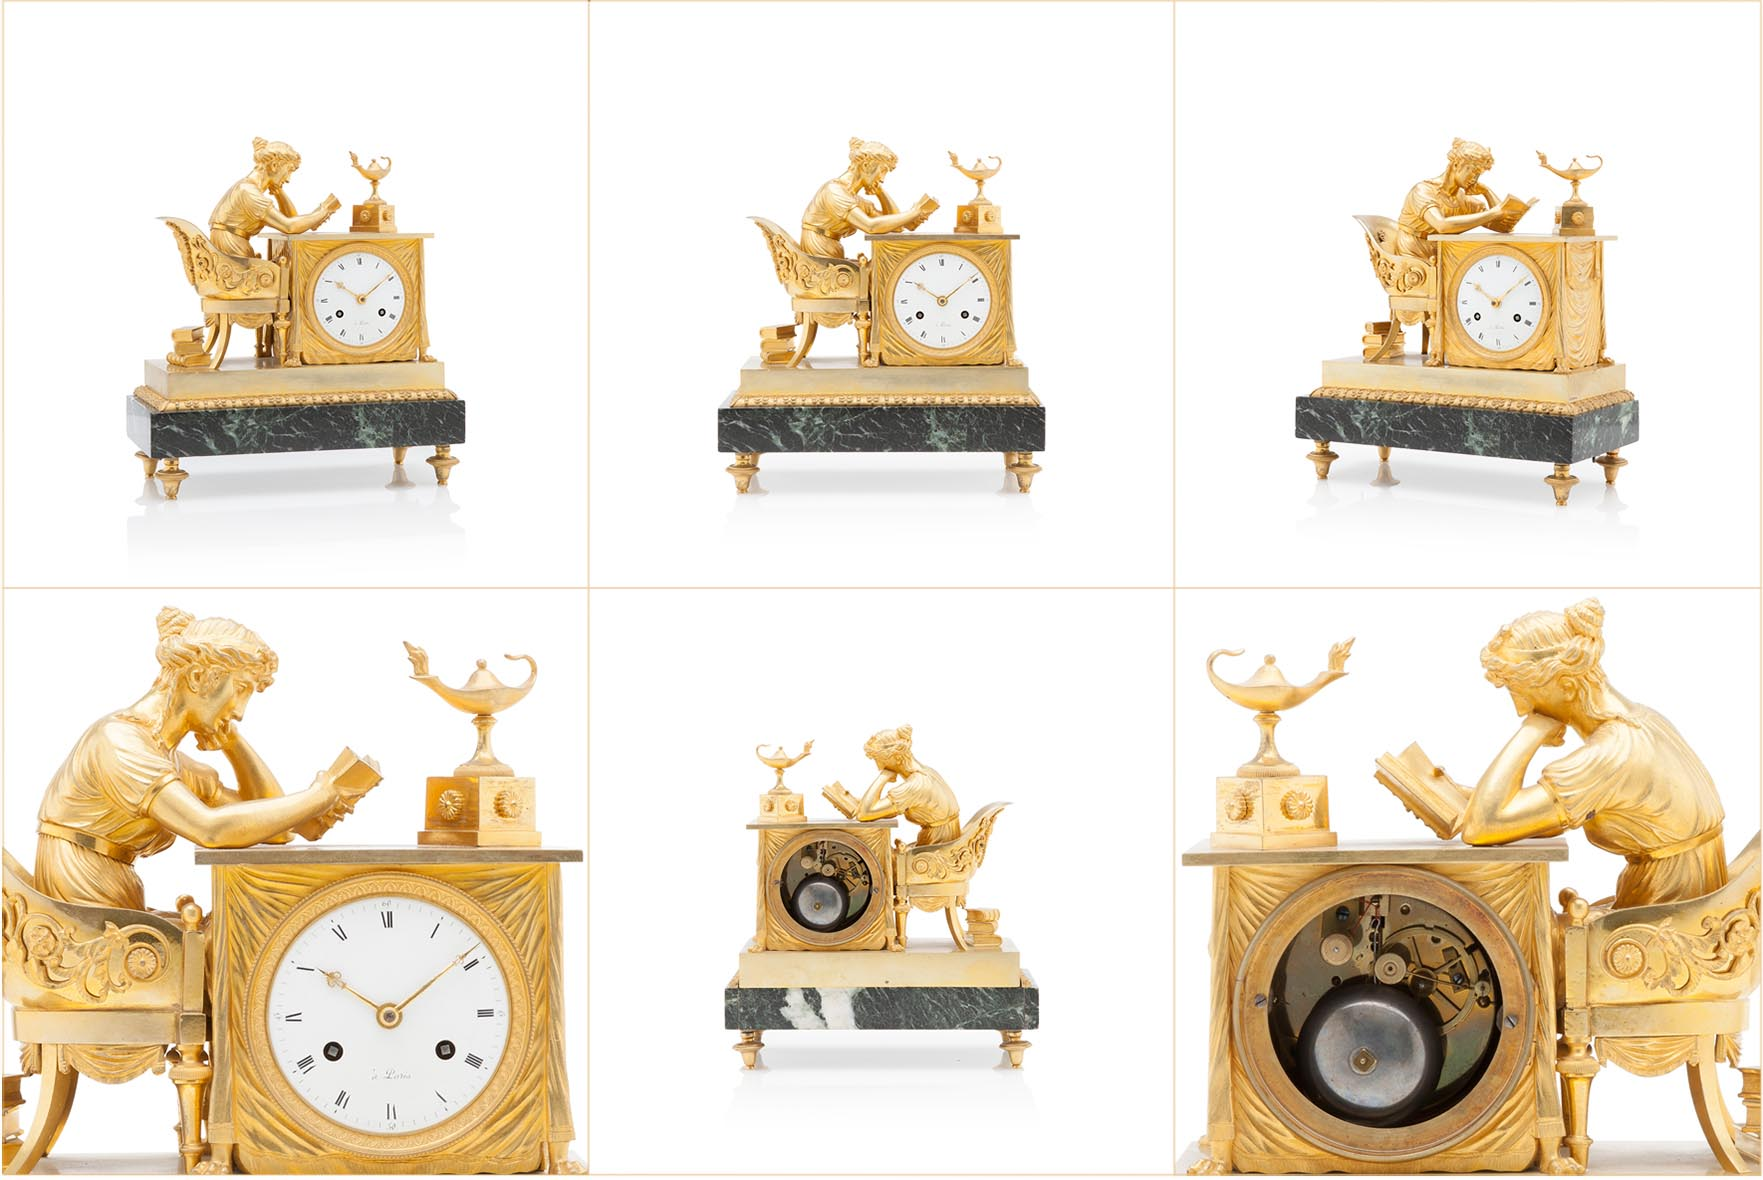 1B_joost_jongerius_antique_clocks